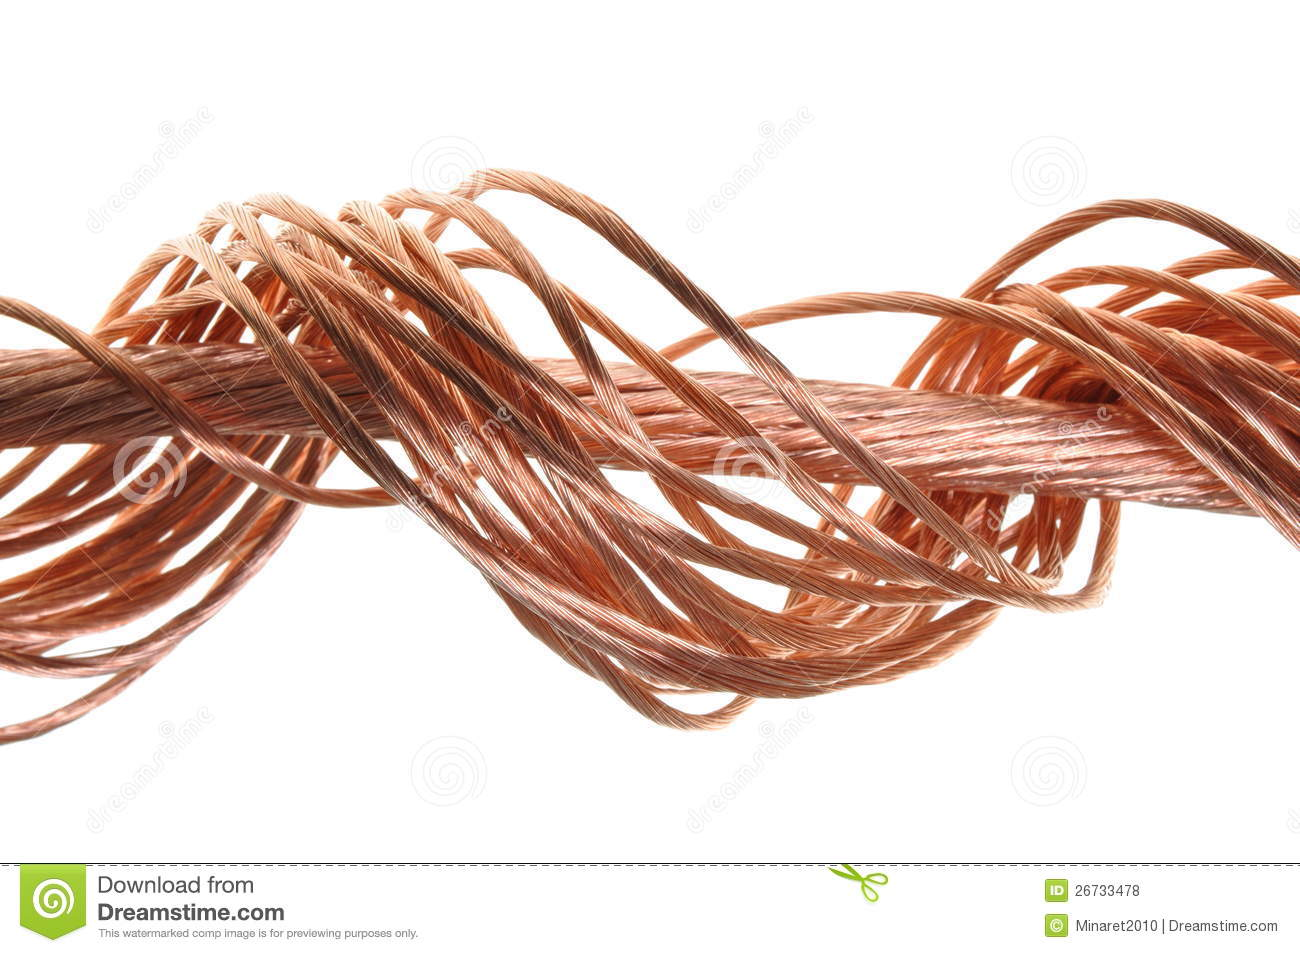 copper wires stock photos - photo #20